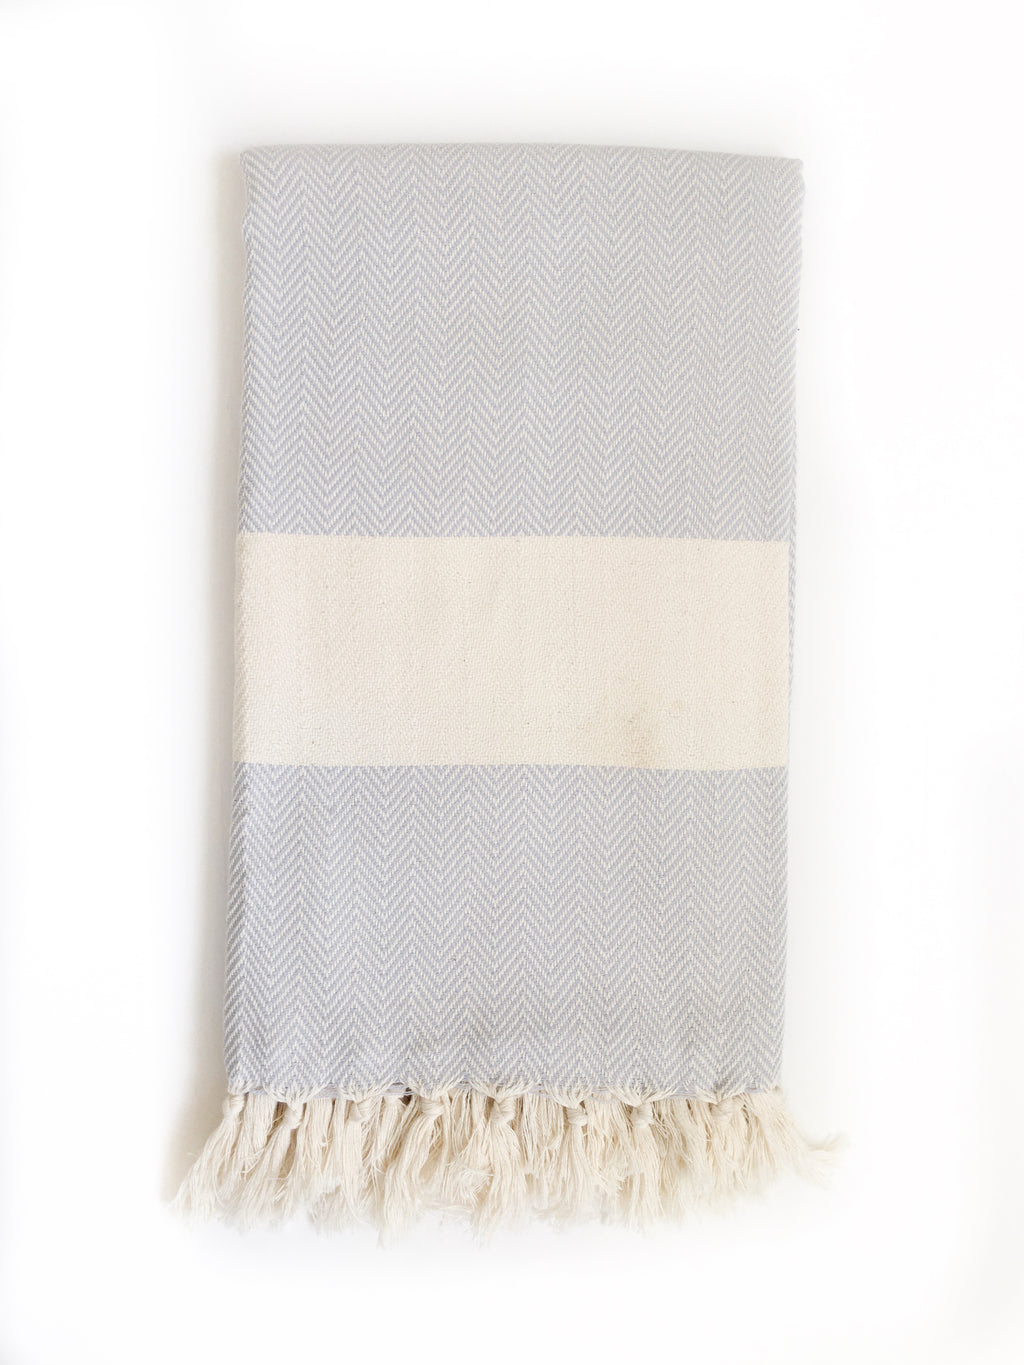 Grey/Cream Herringbone Turkish Bath/Beach Towel